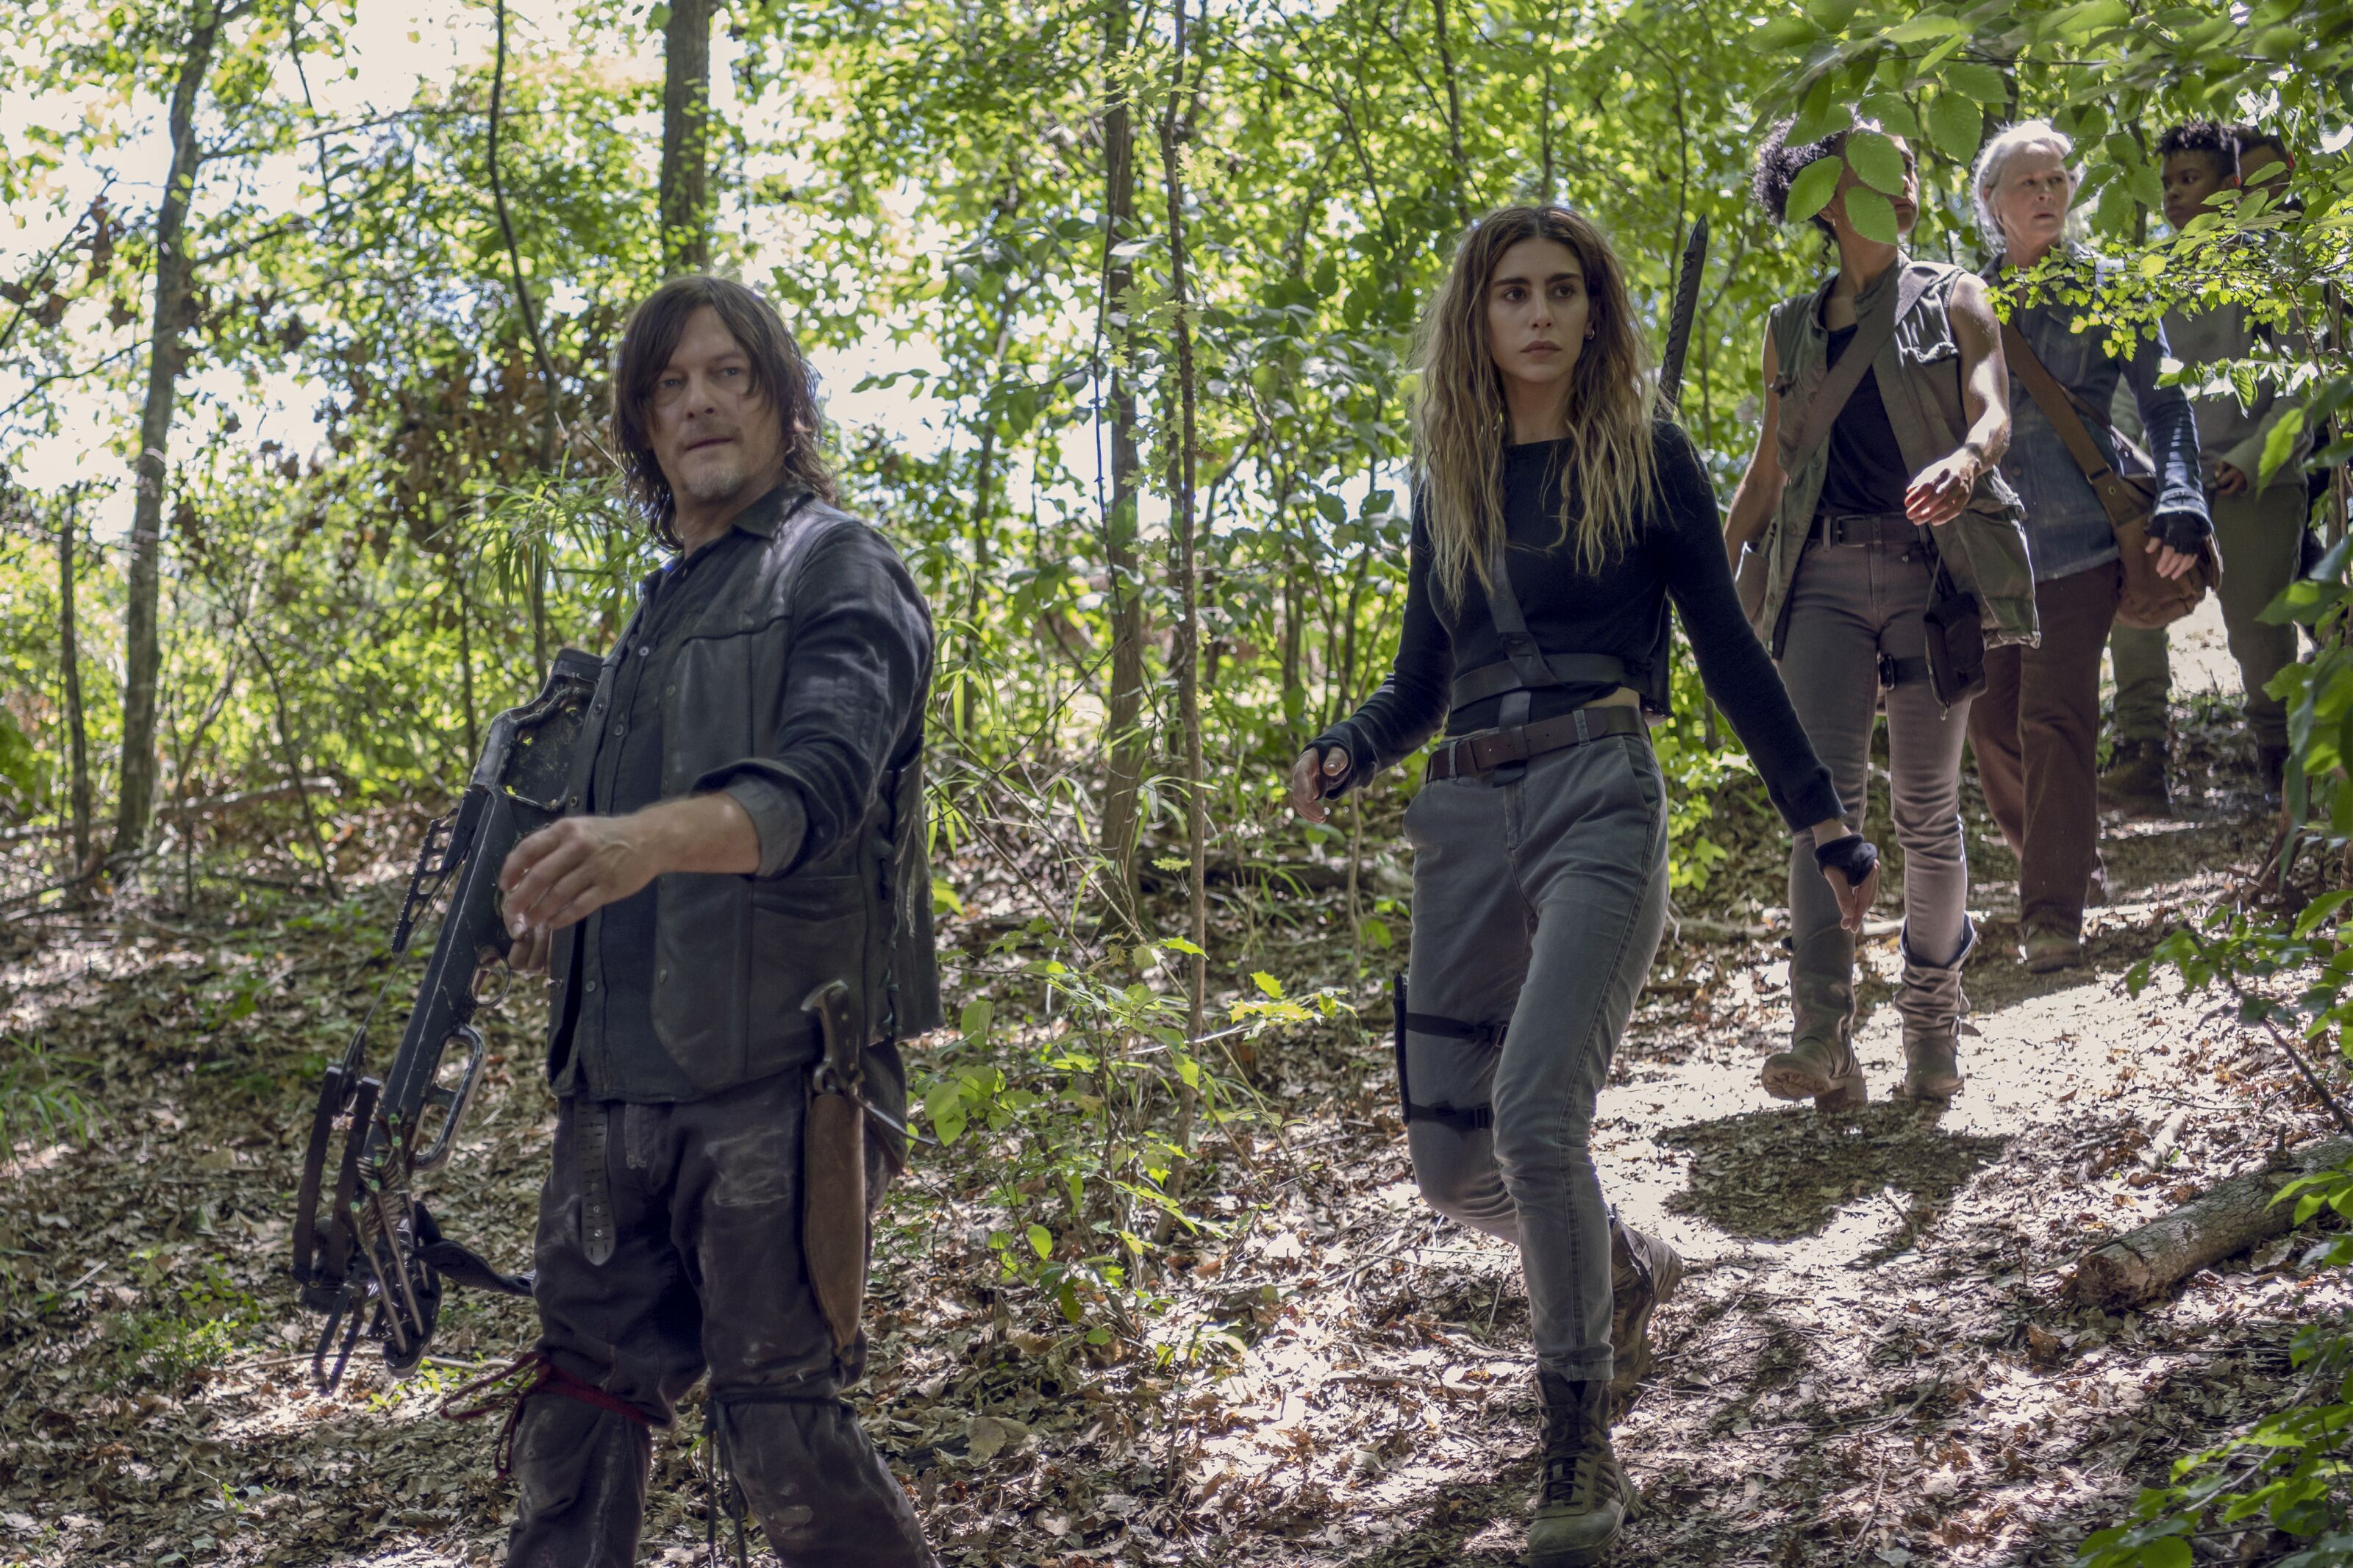 What will happen with the survivors in the cave on The Walking Dead?